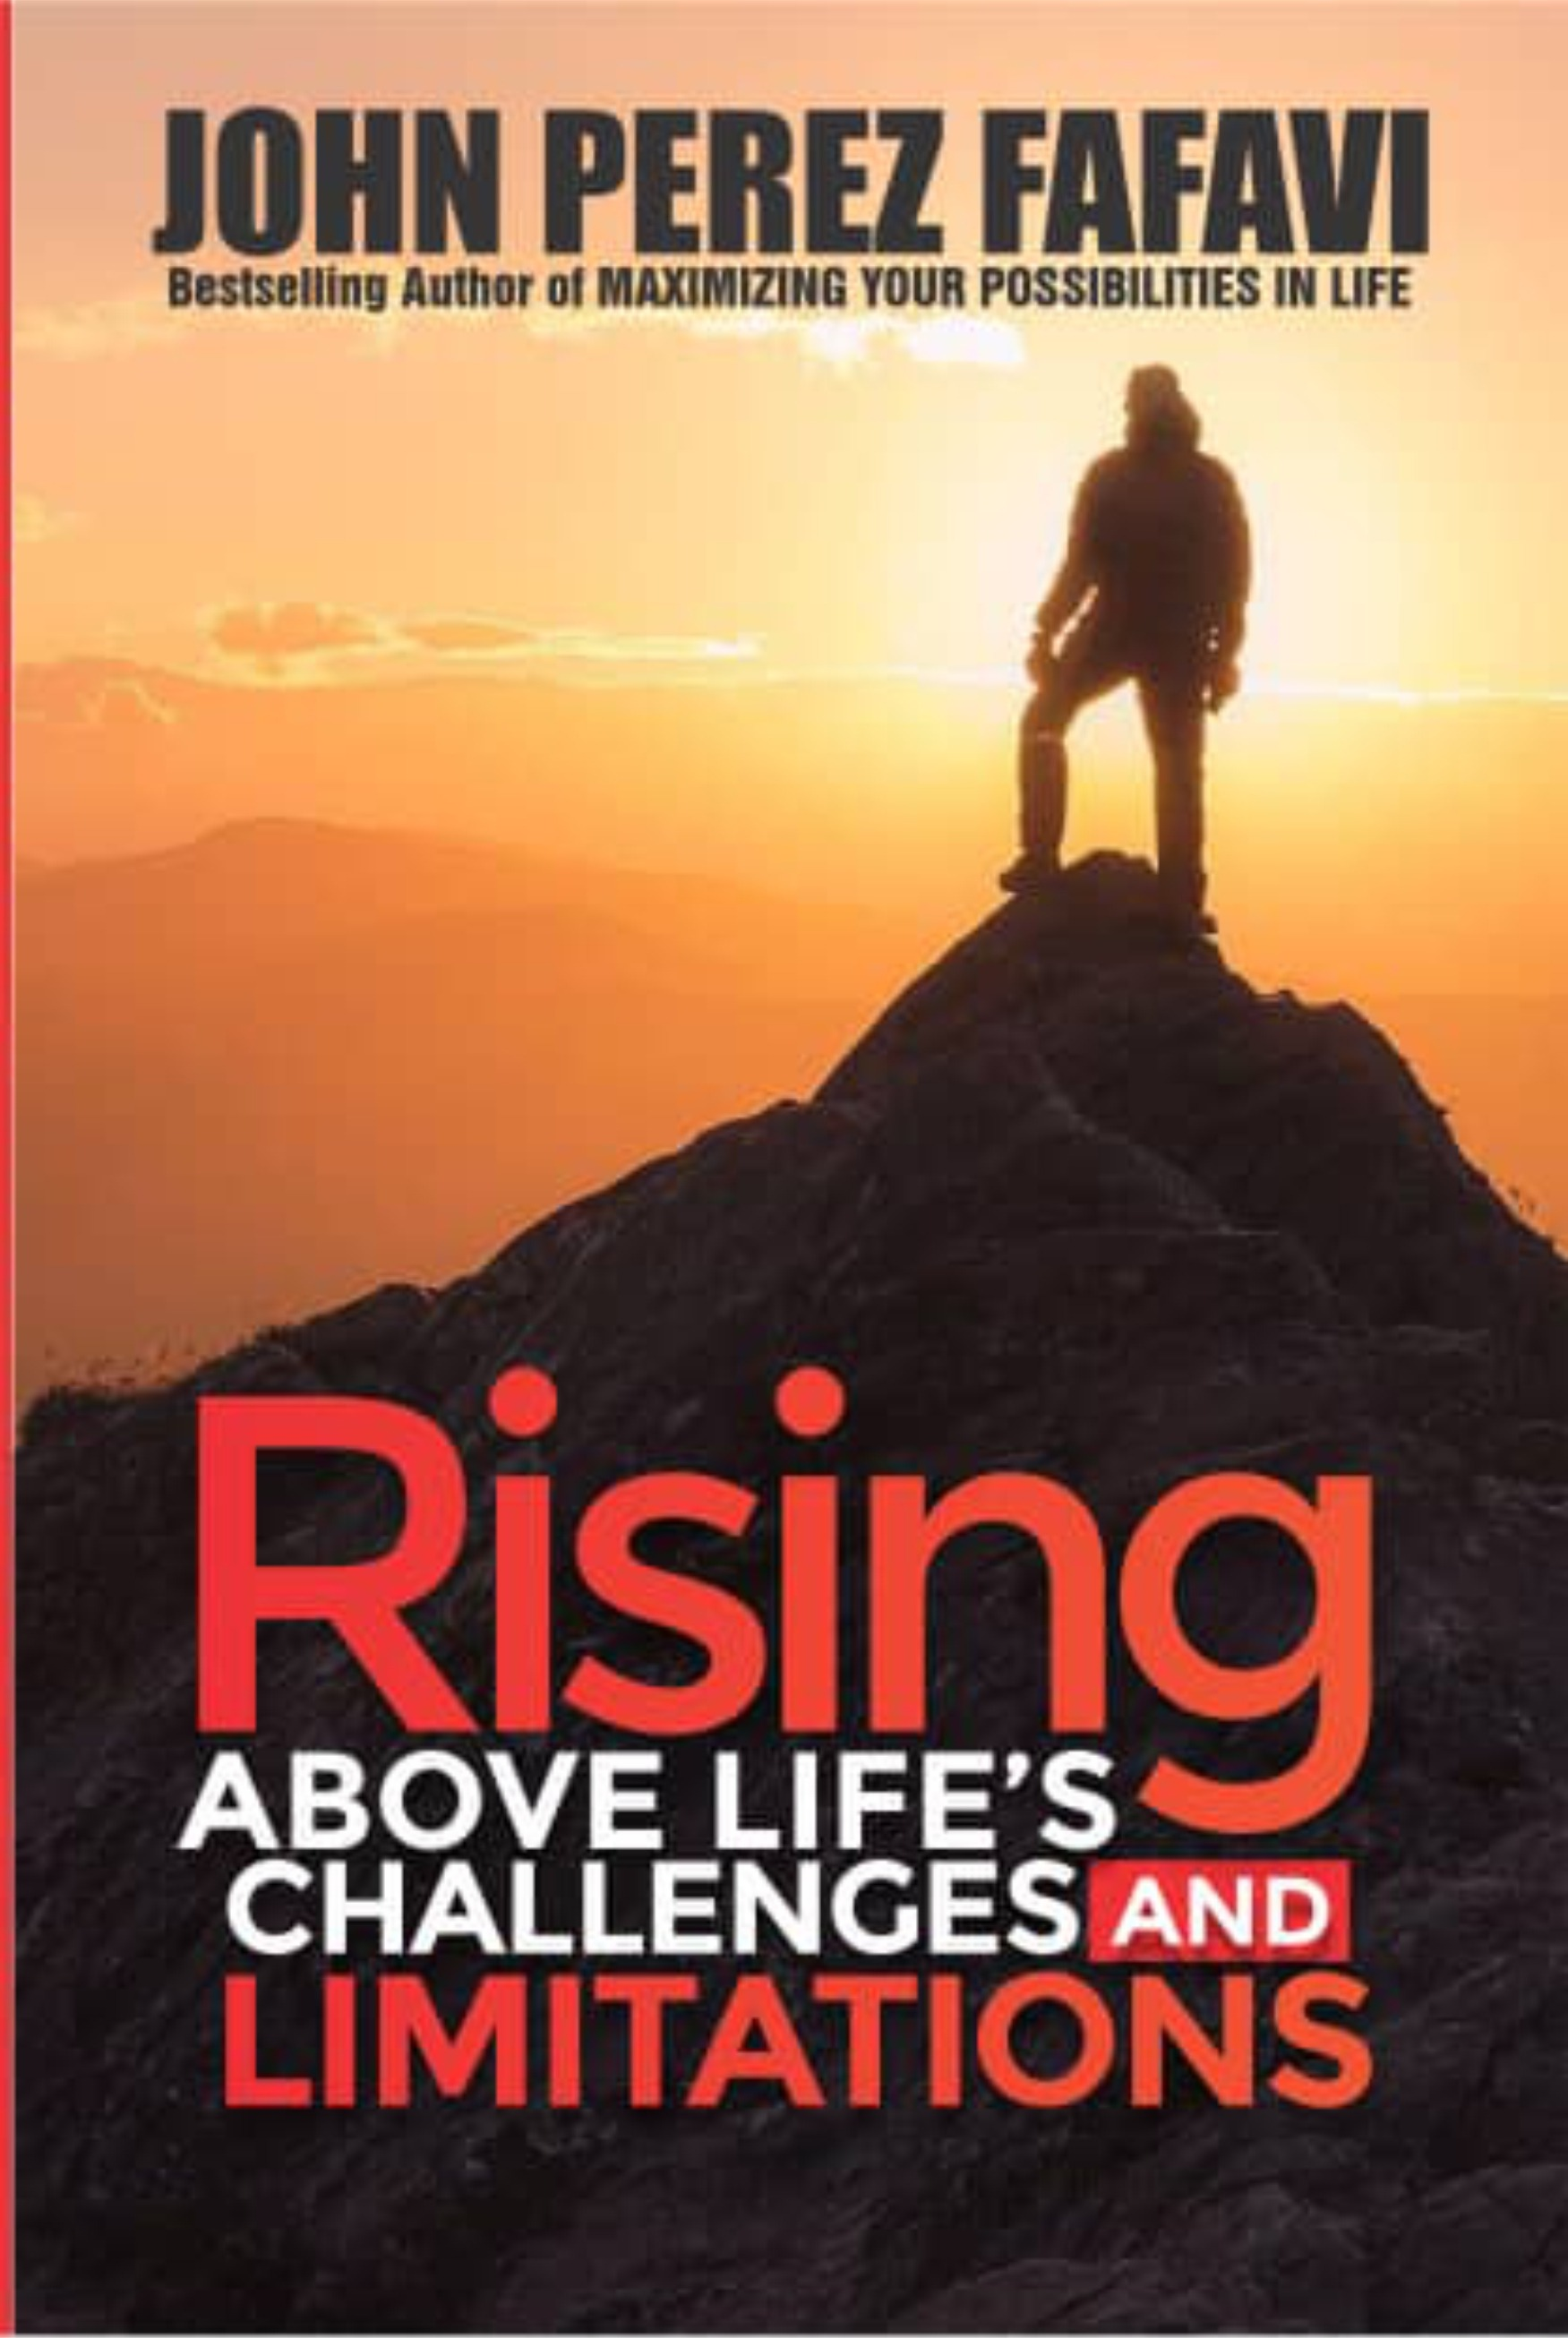 RISING ABOVE LIFE'S CHALLENGES and LIMITATIONS